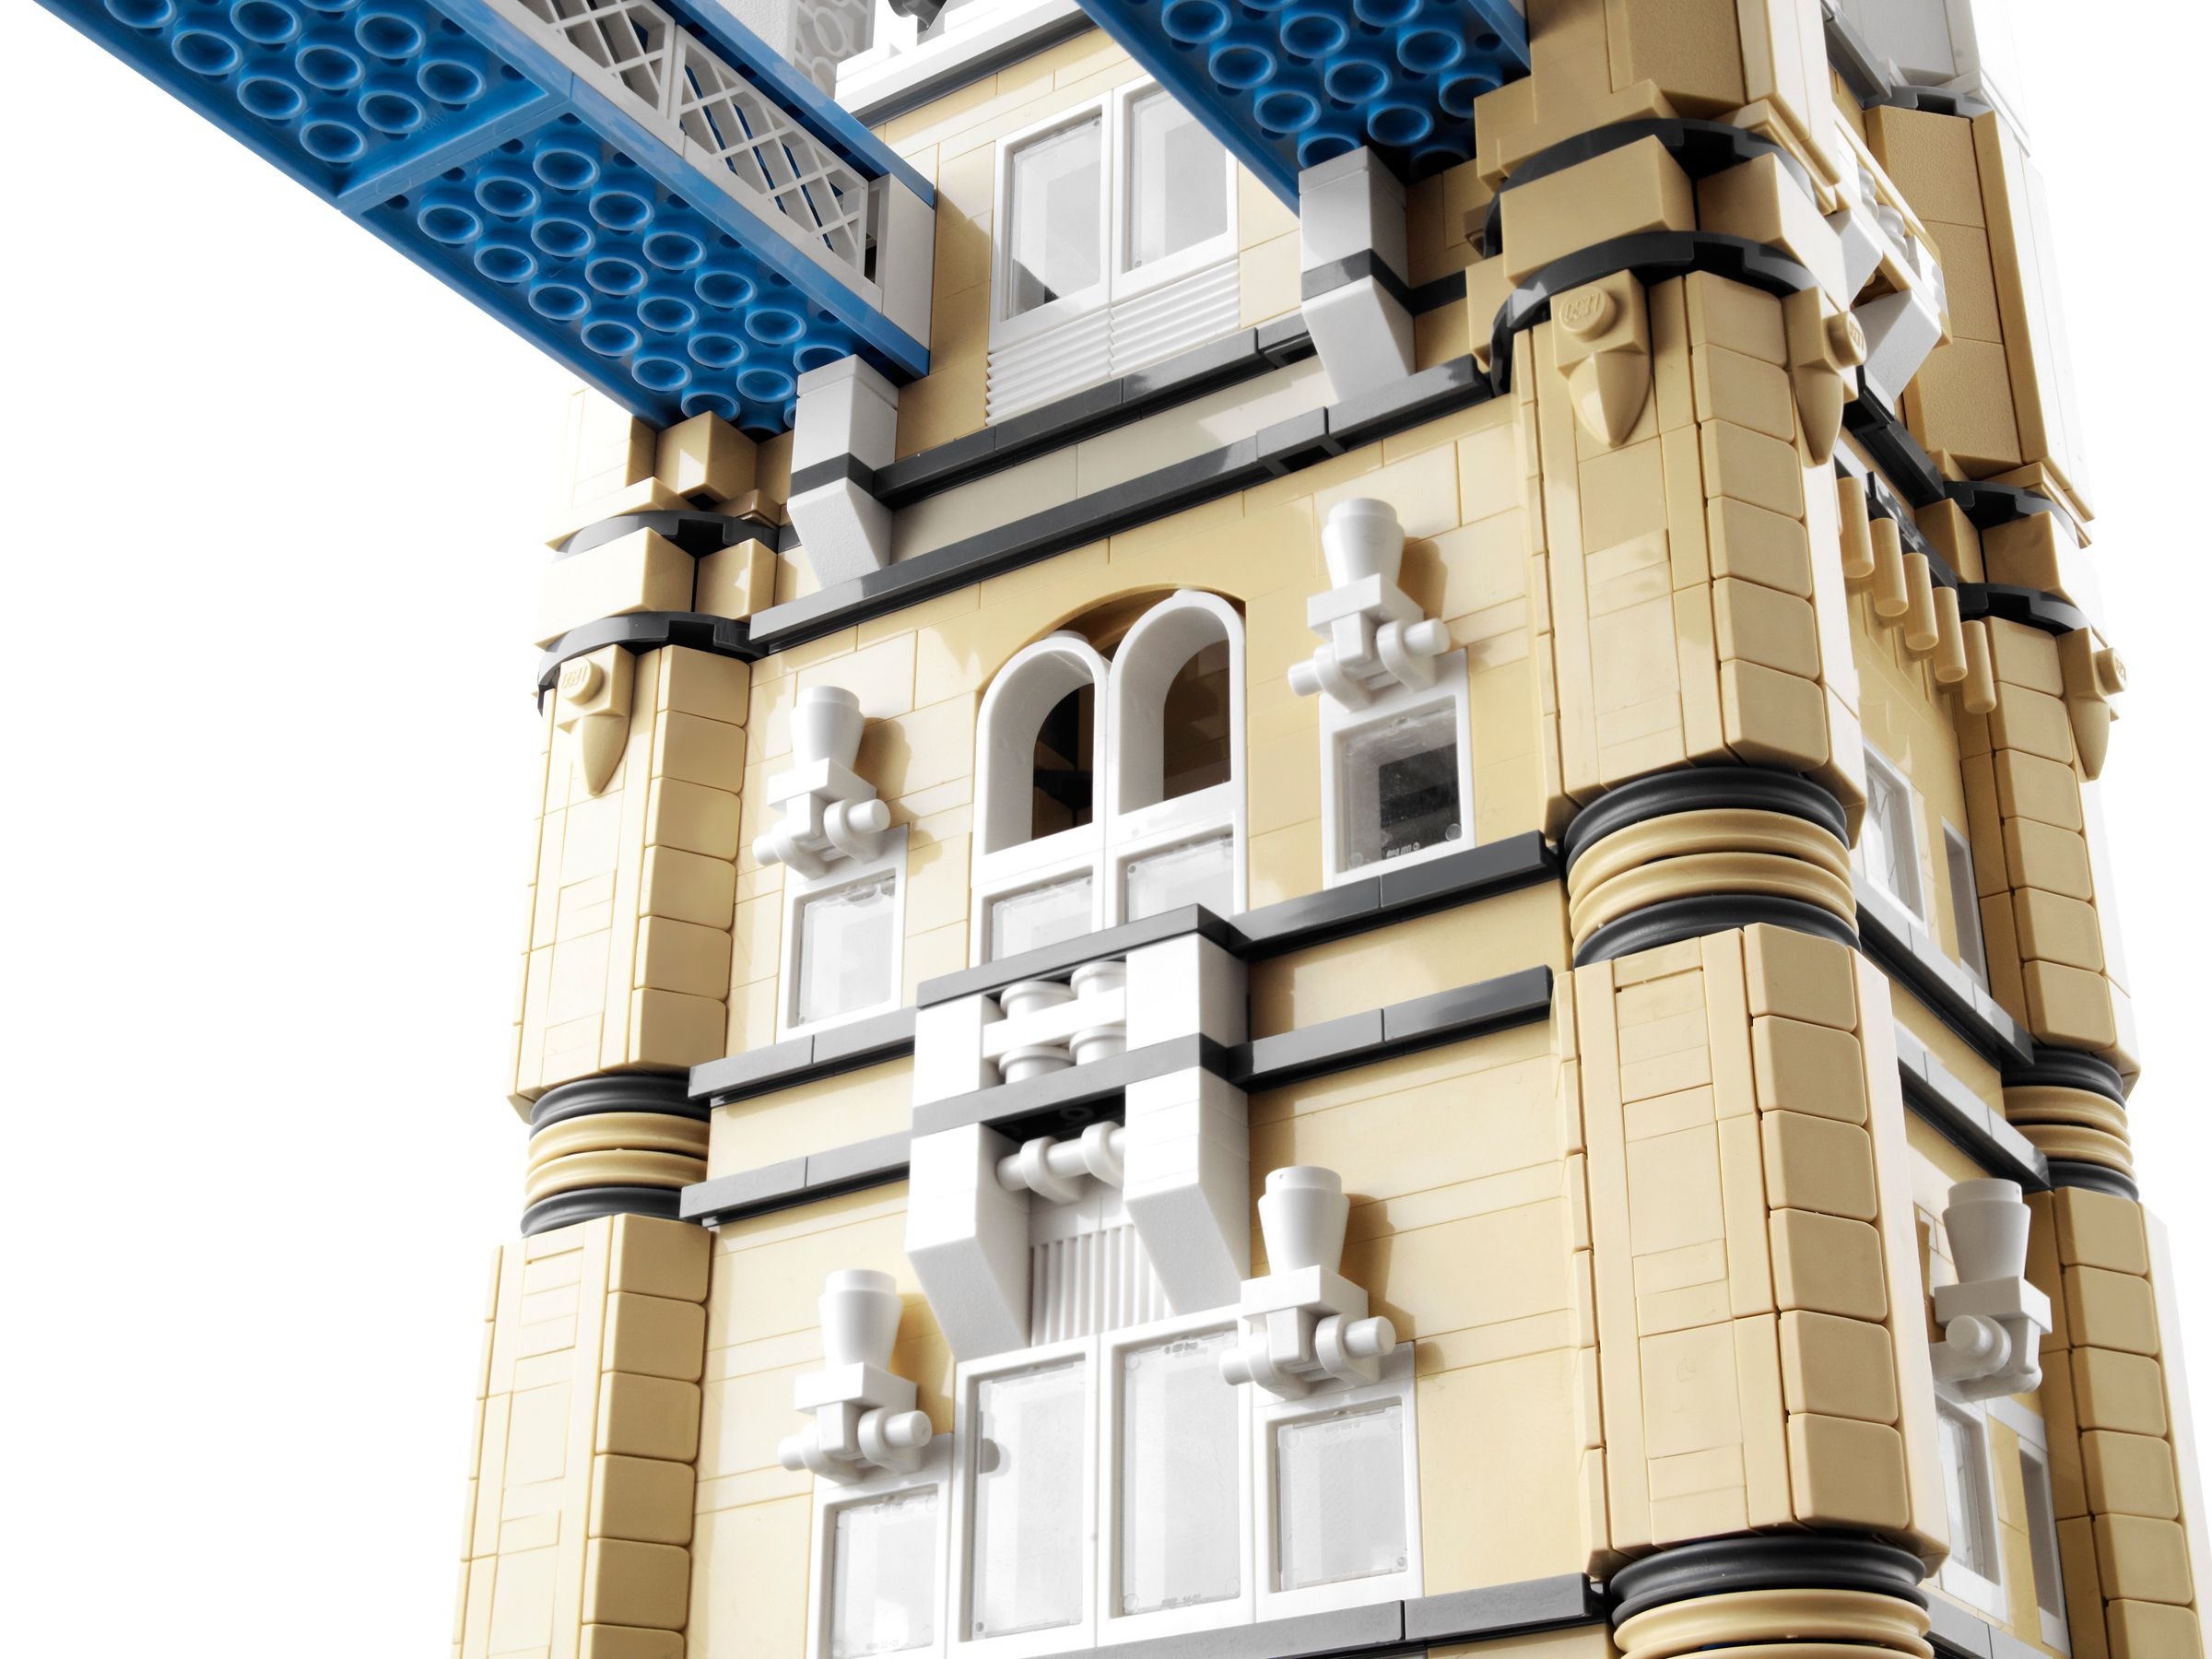 LEGO Advanced Models 10214 Tower Bridge LEGO_10214_alt7.jpg